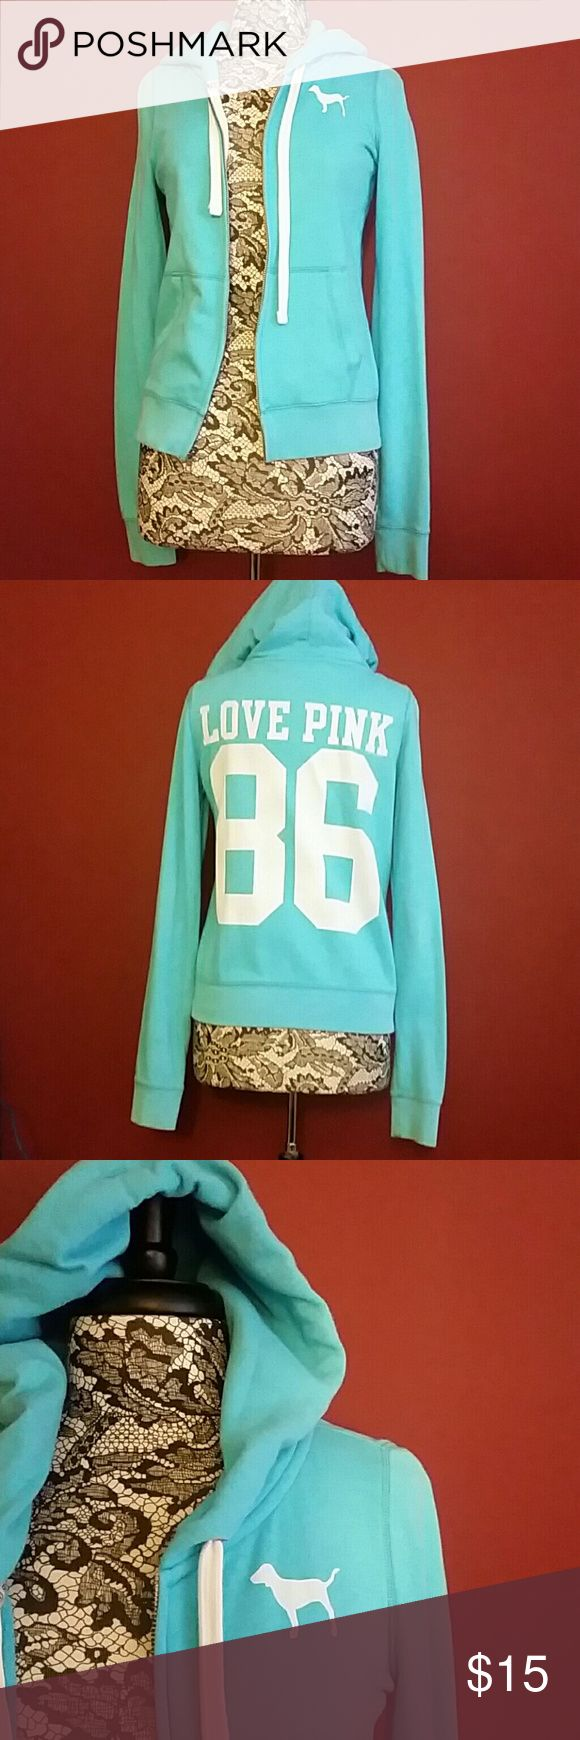 PINK light blue zip up hoodie. PINK light blue zip up hoodie. White PINk dog on front. Love Pink 86 on the back in white. PINK Victoria's Secret Tops Sweatshirts & Hoodies